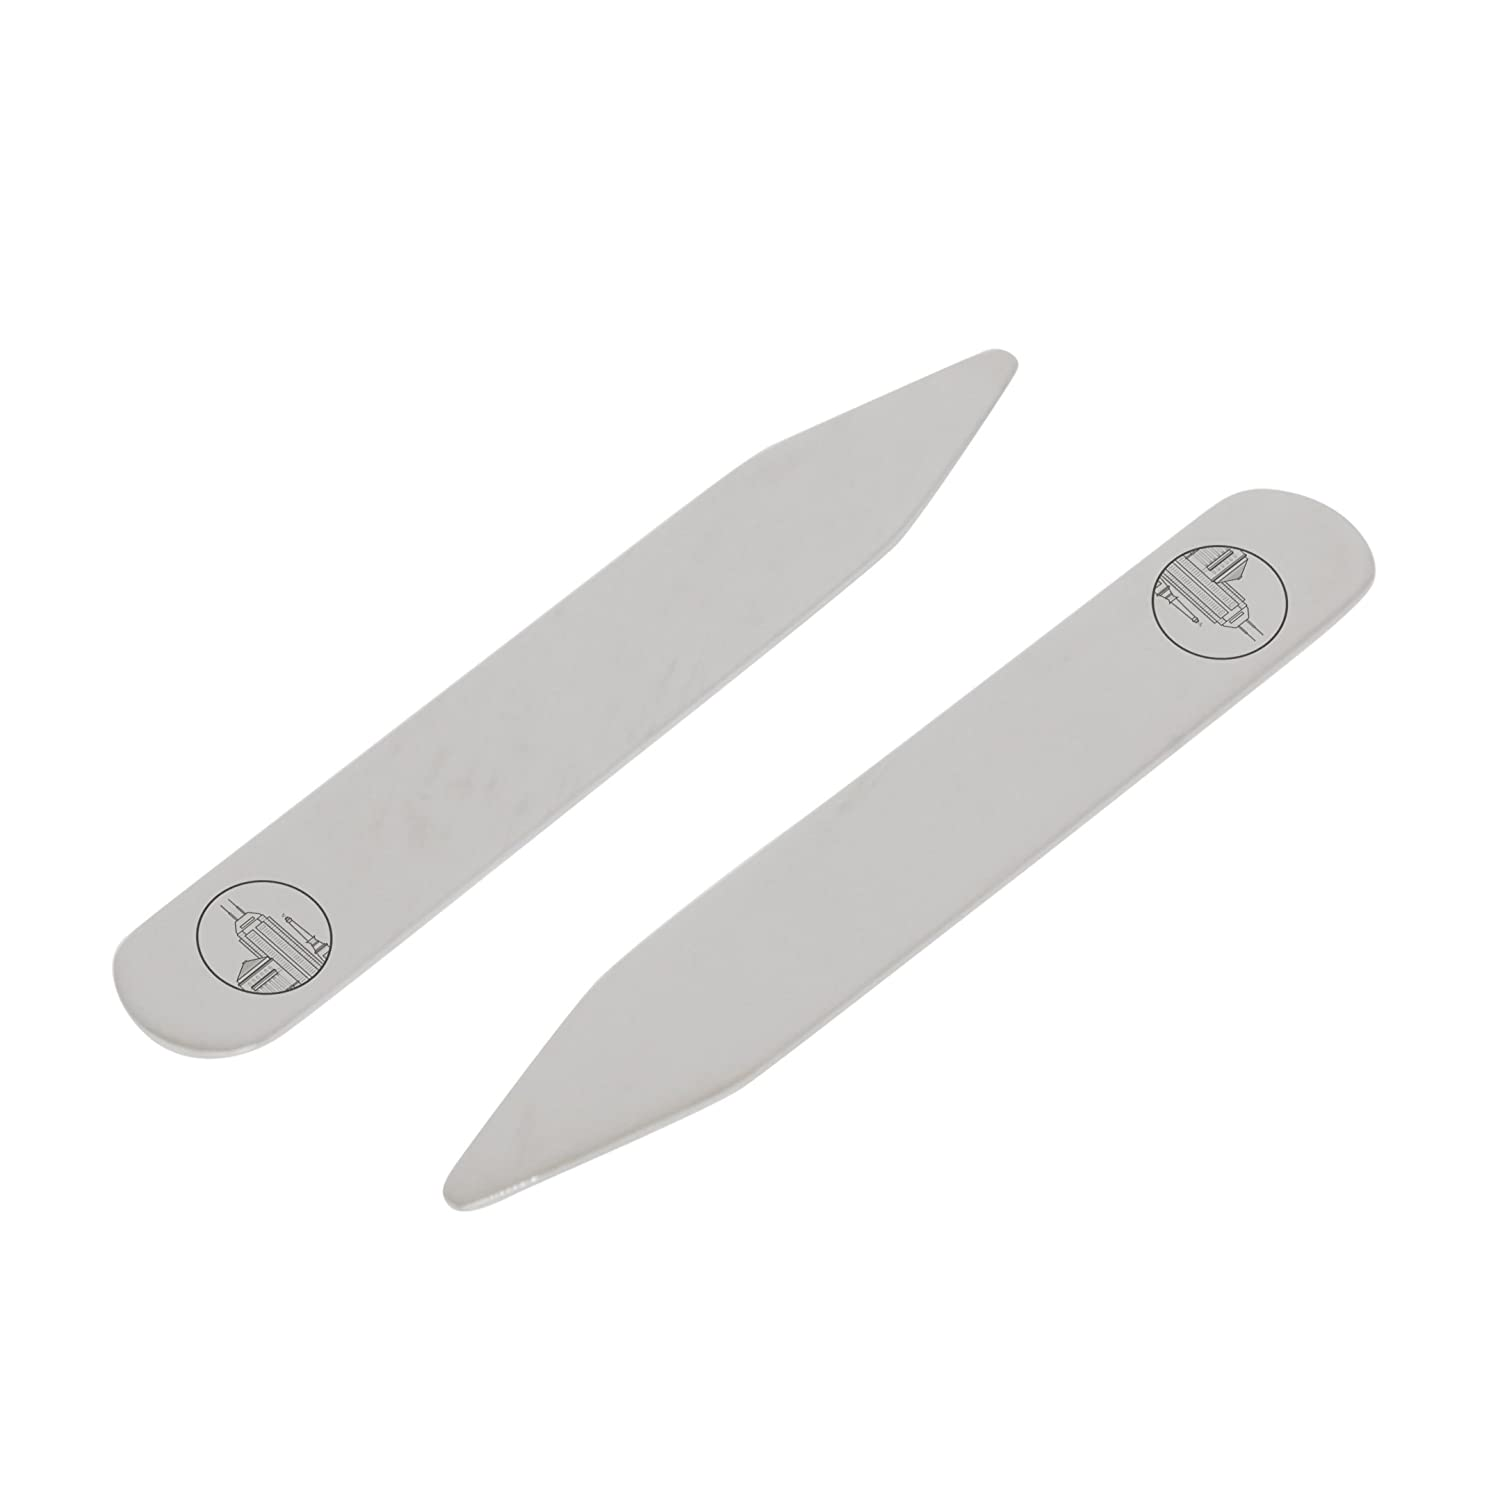 MODERN GOODS SHOP Stainless Steel Collar Stays With Laser Engraved Indianapolis Design Made In USA 2.5 Inch Metal Collar Stiffeners